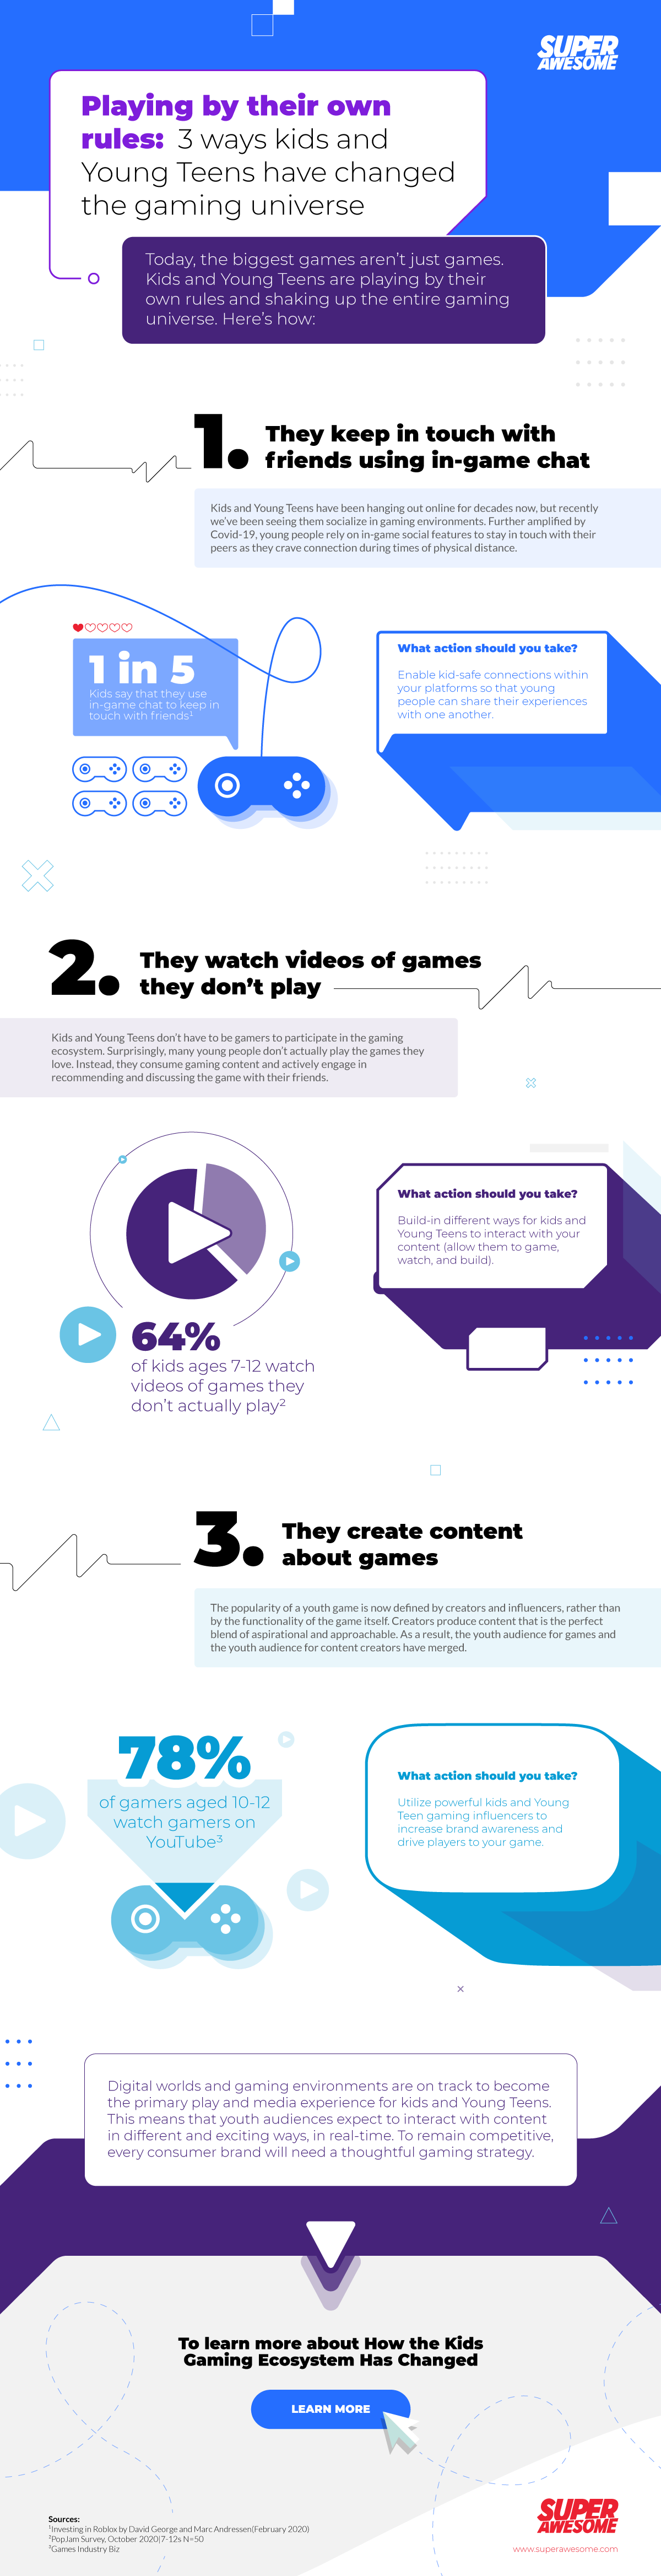 Playing by their own rules: 3 ways kids and Young Teens have changed the gaming universe infographic